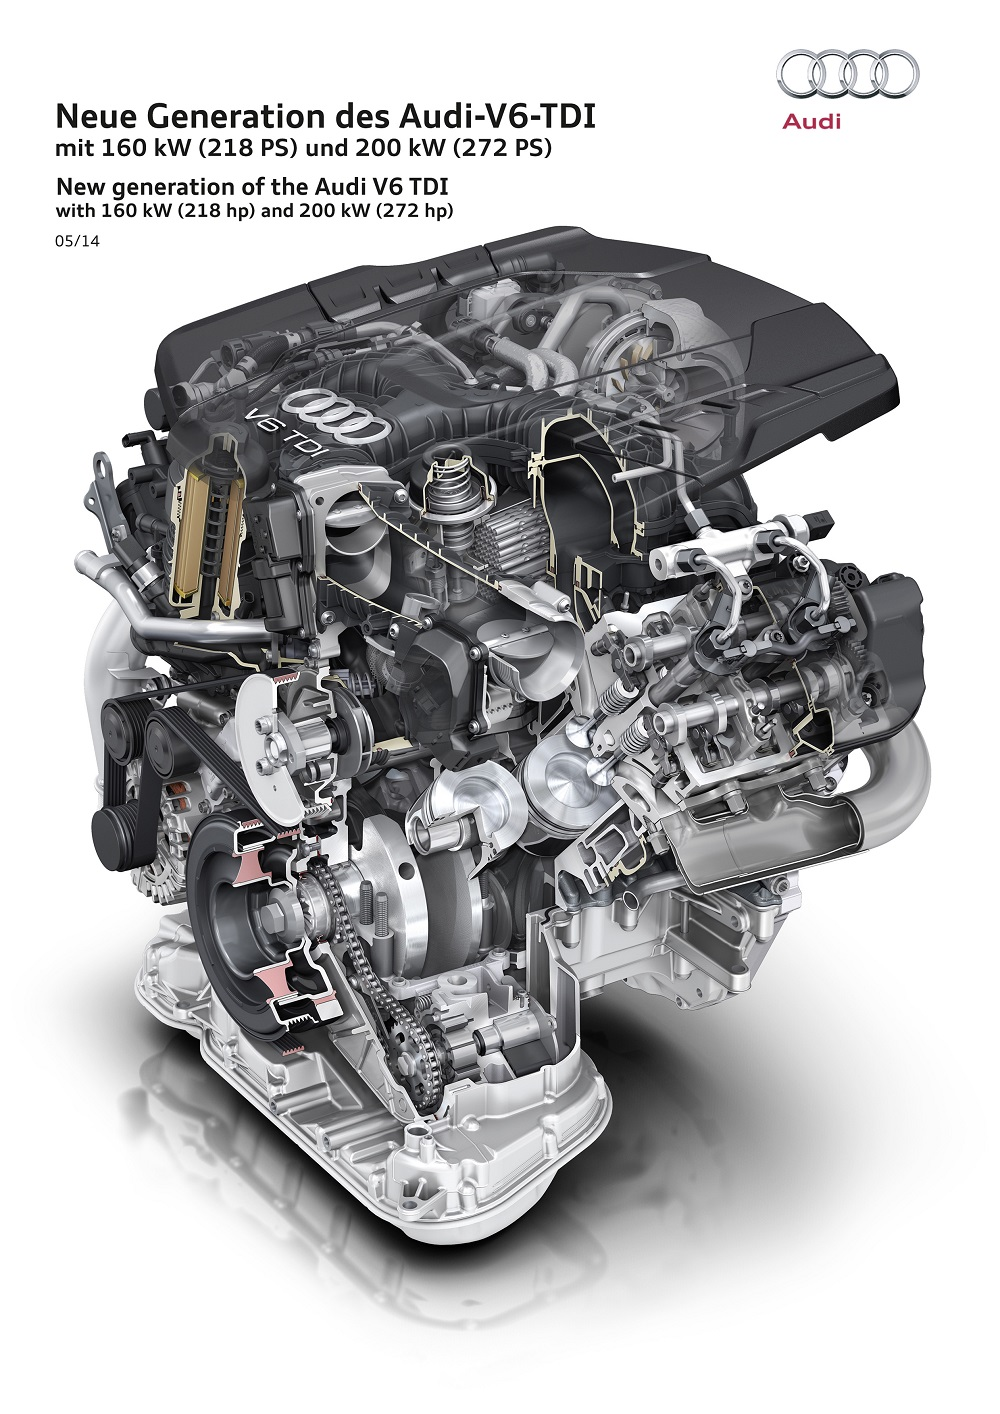 New generation of the Audi V6 TDI with 160 kW (218 hp) and 200 kW (272 hp)